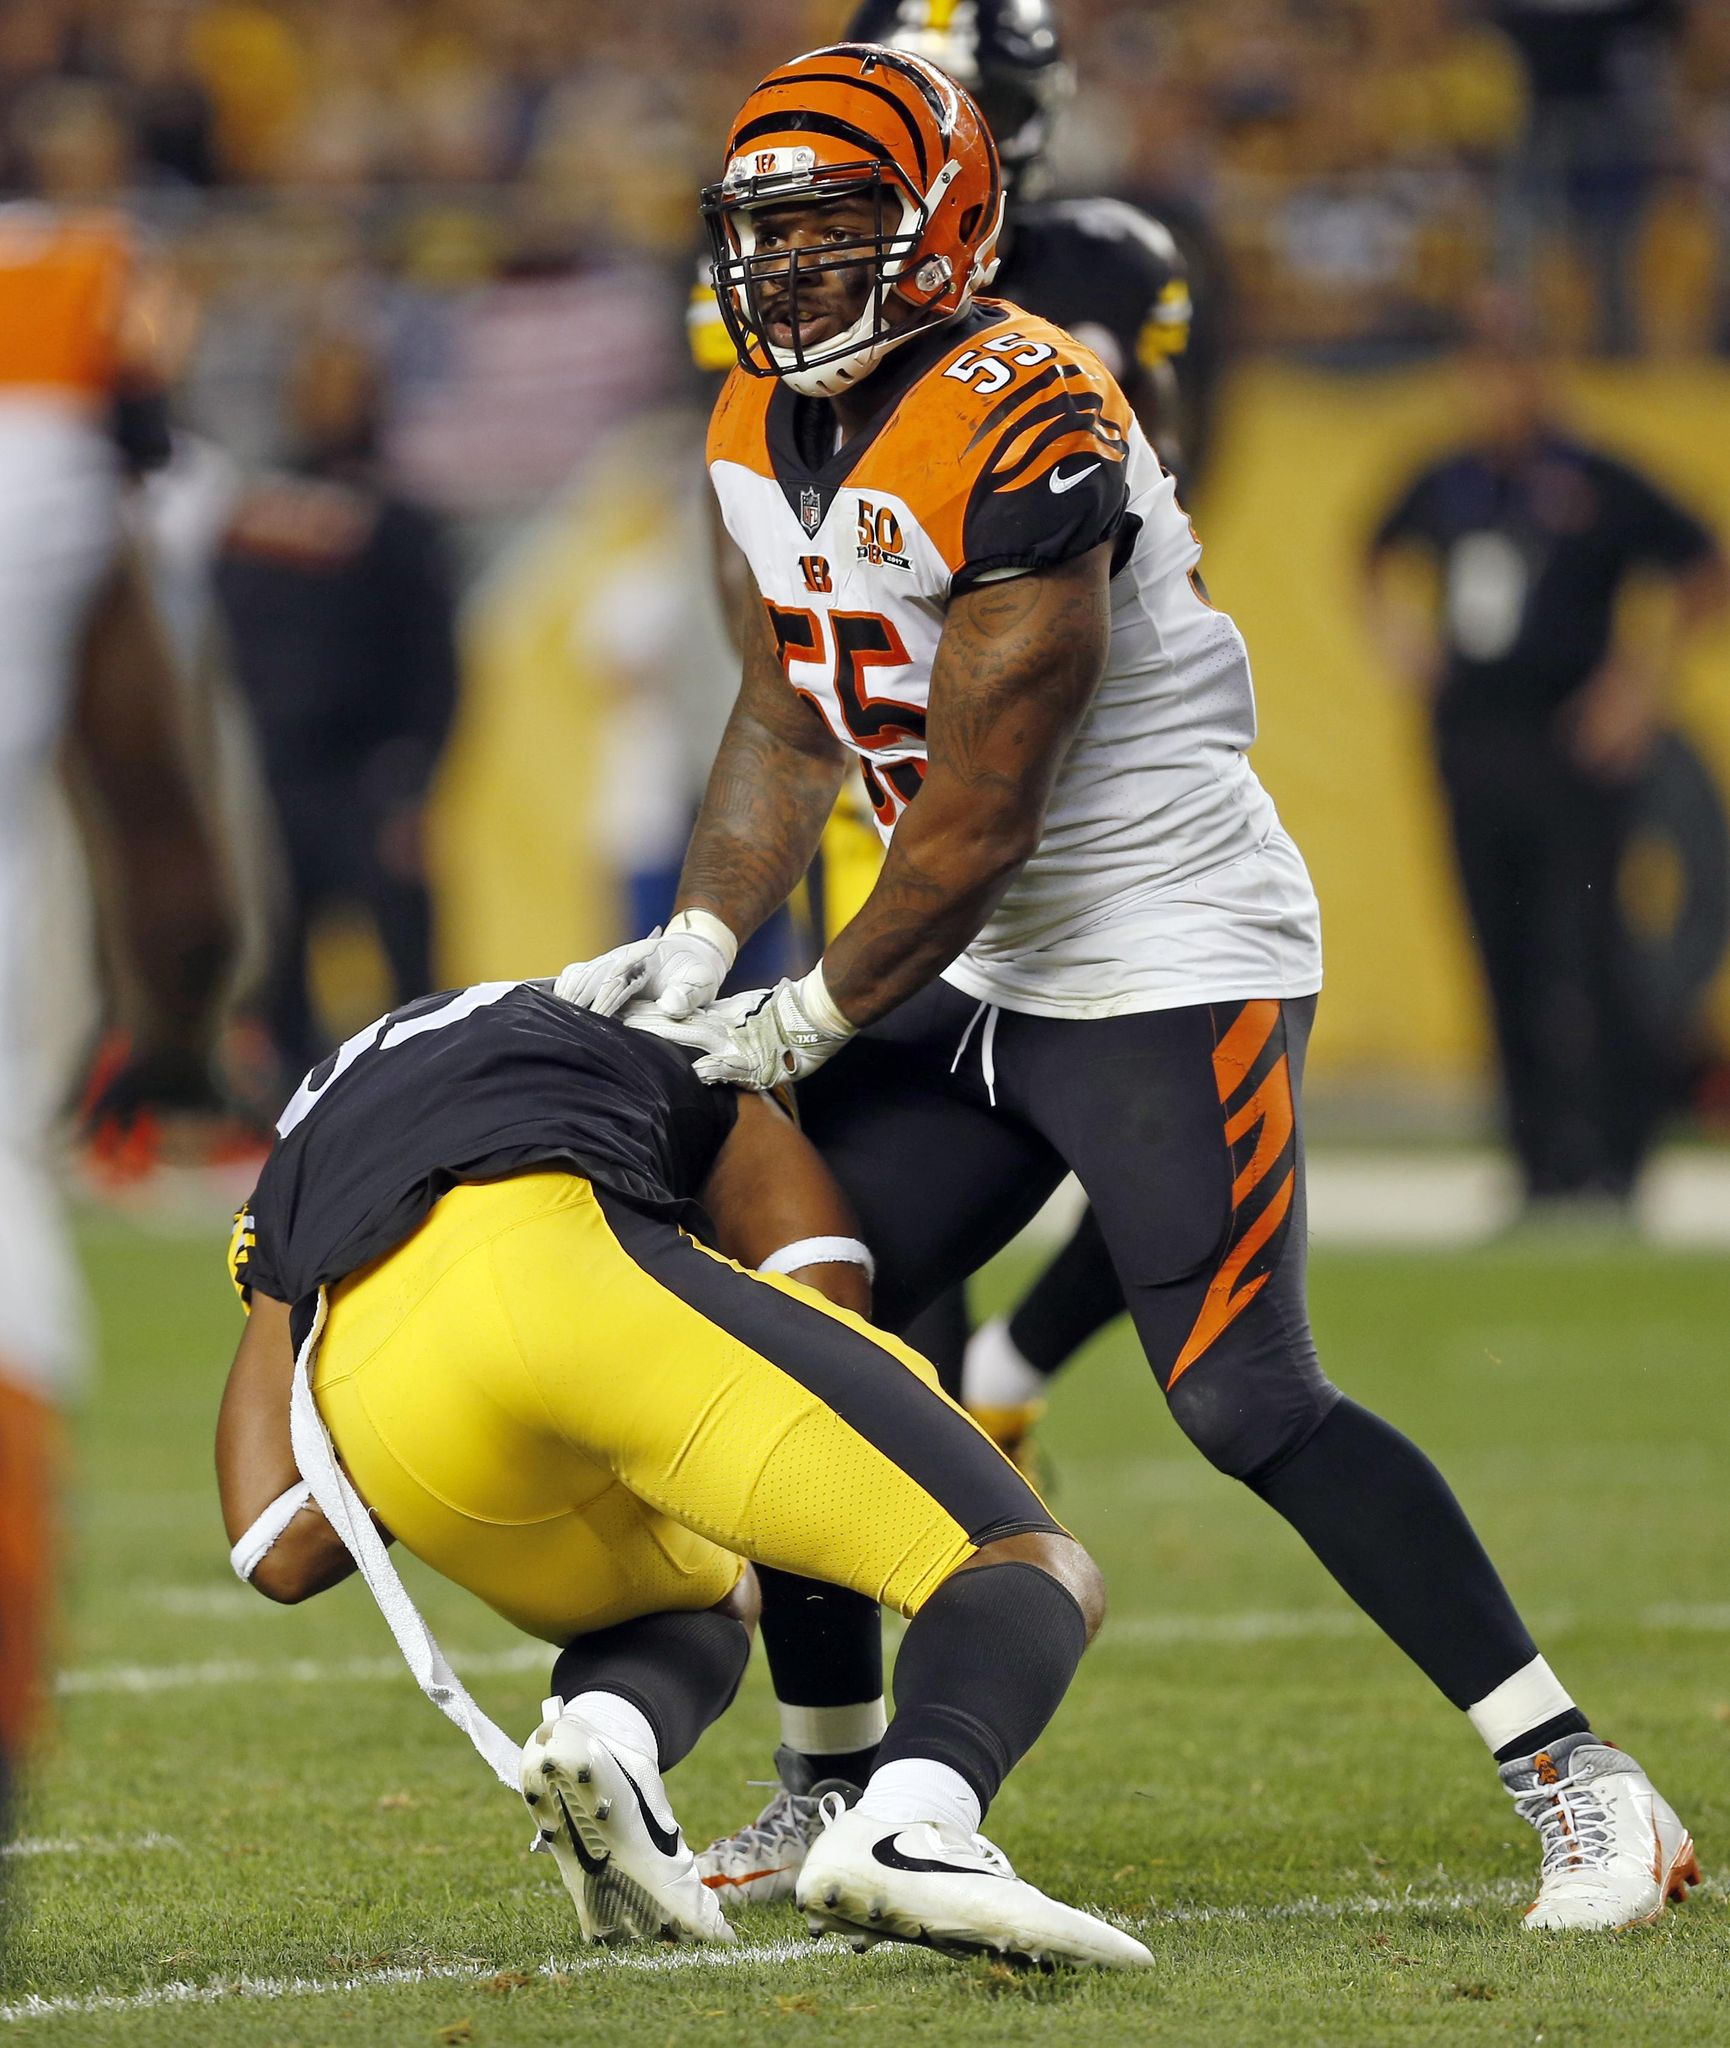 Bengals_keeping_cool_football_99855_s1730x2048